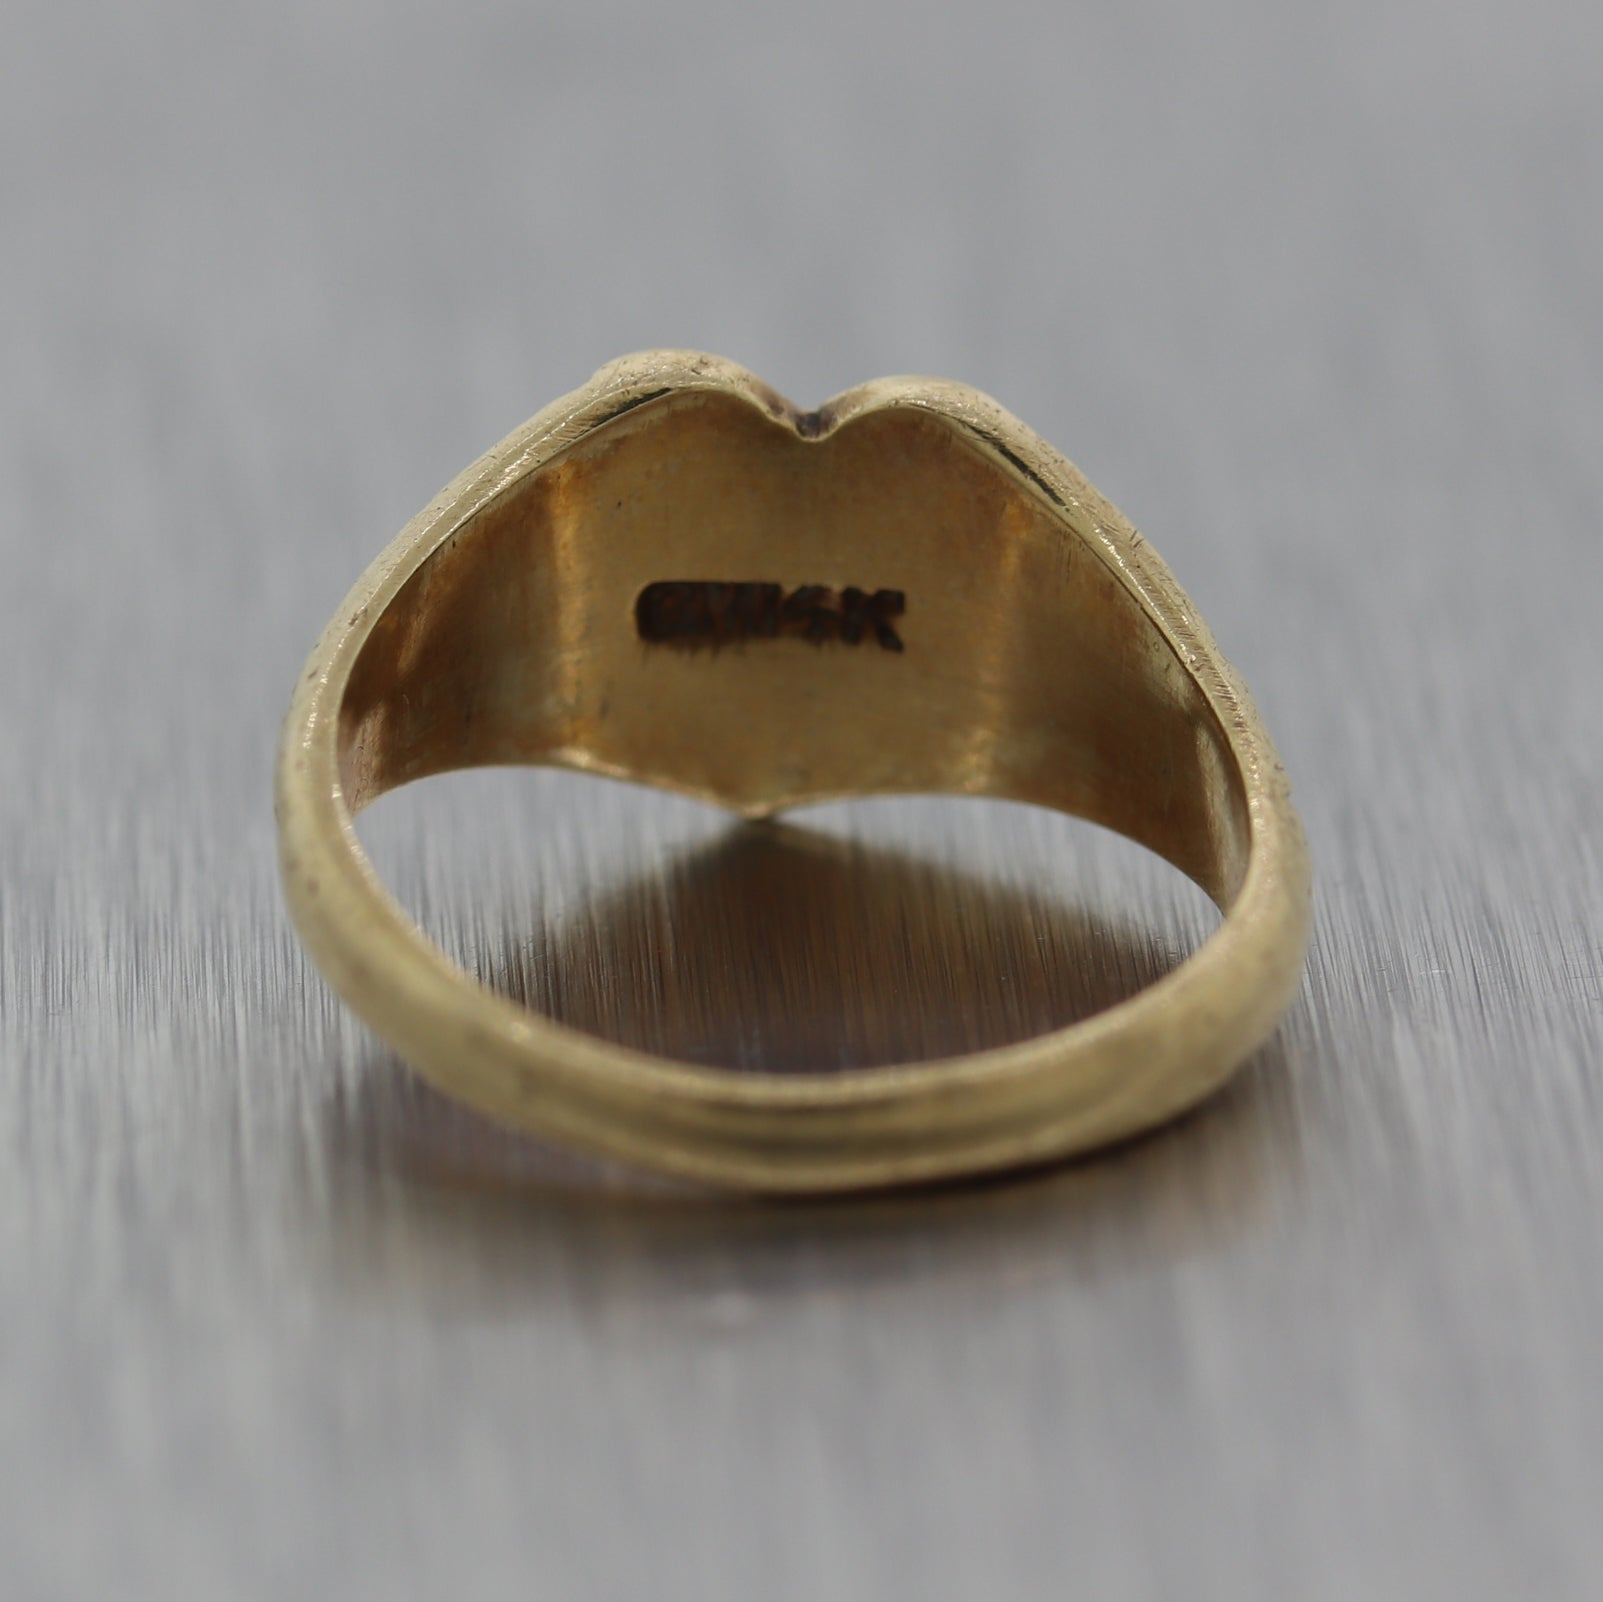 1870's Antique Victorian 14k Yellow Gold Heart Signet Ring